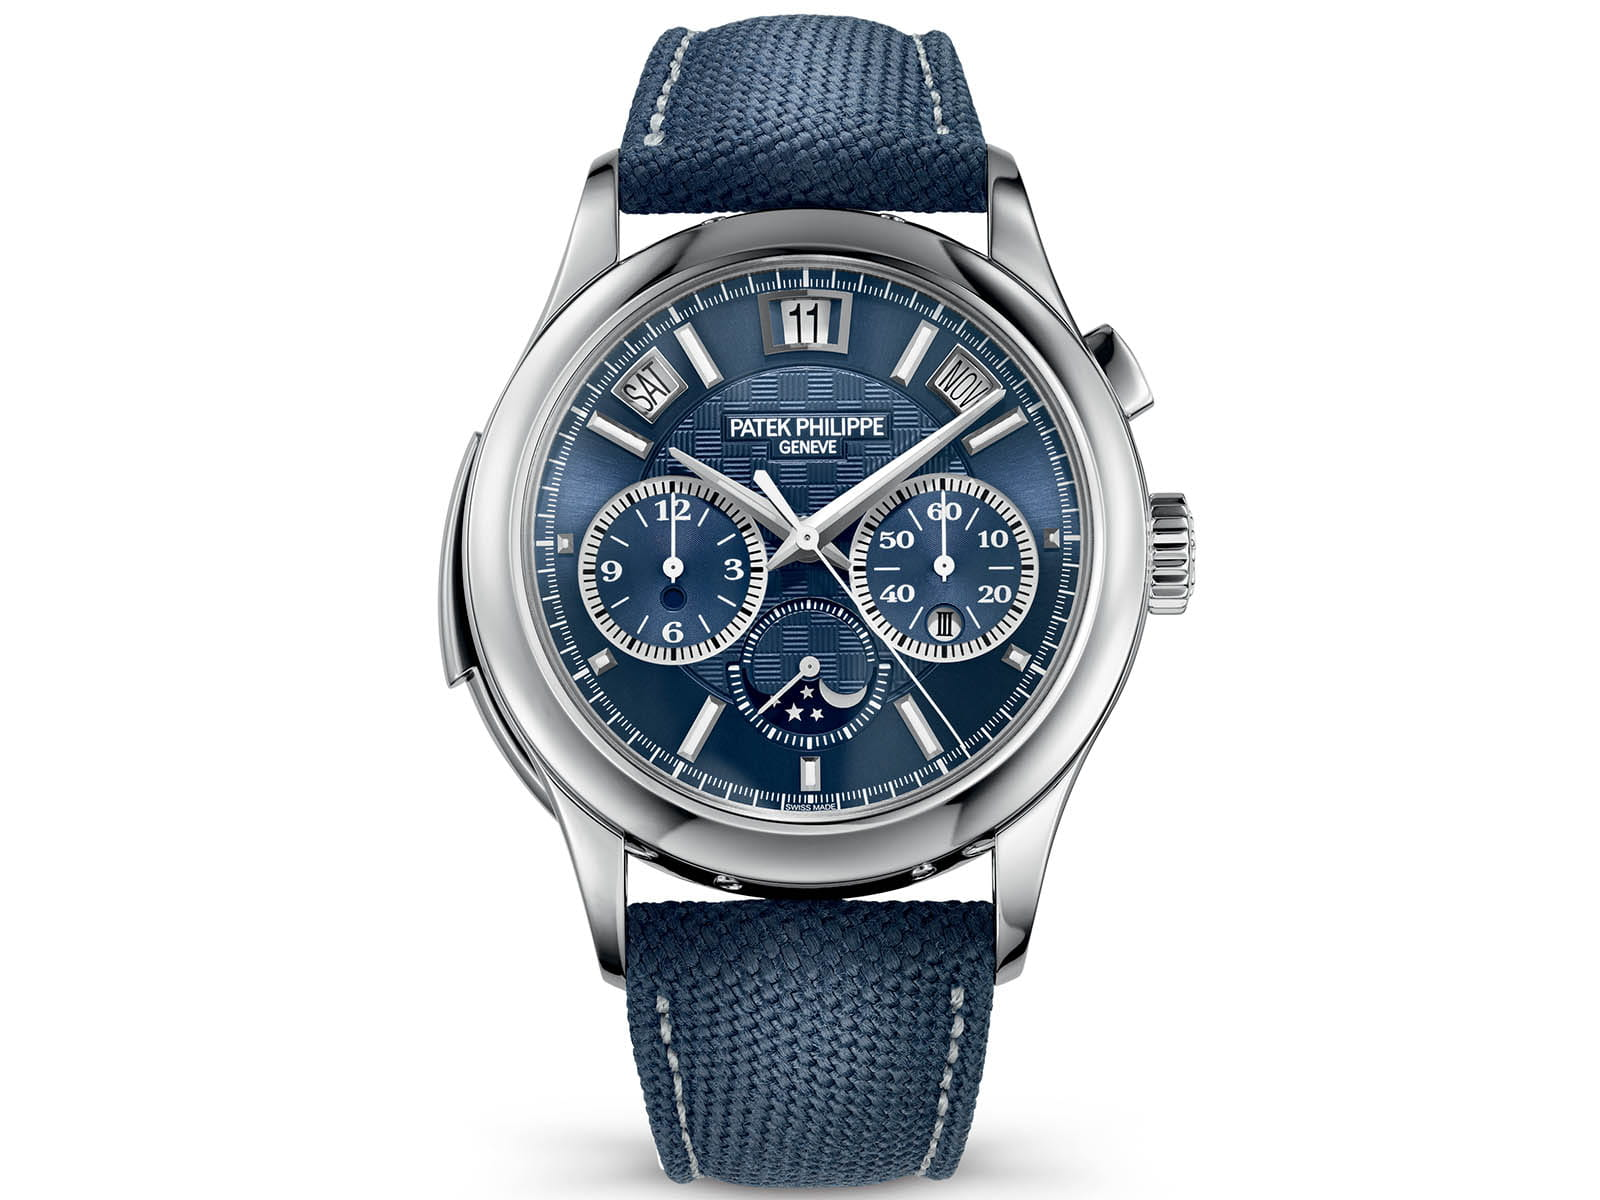 5208t-010-patek-philippe-5208t-only-watch-2017.jpg